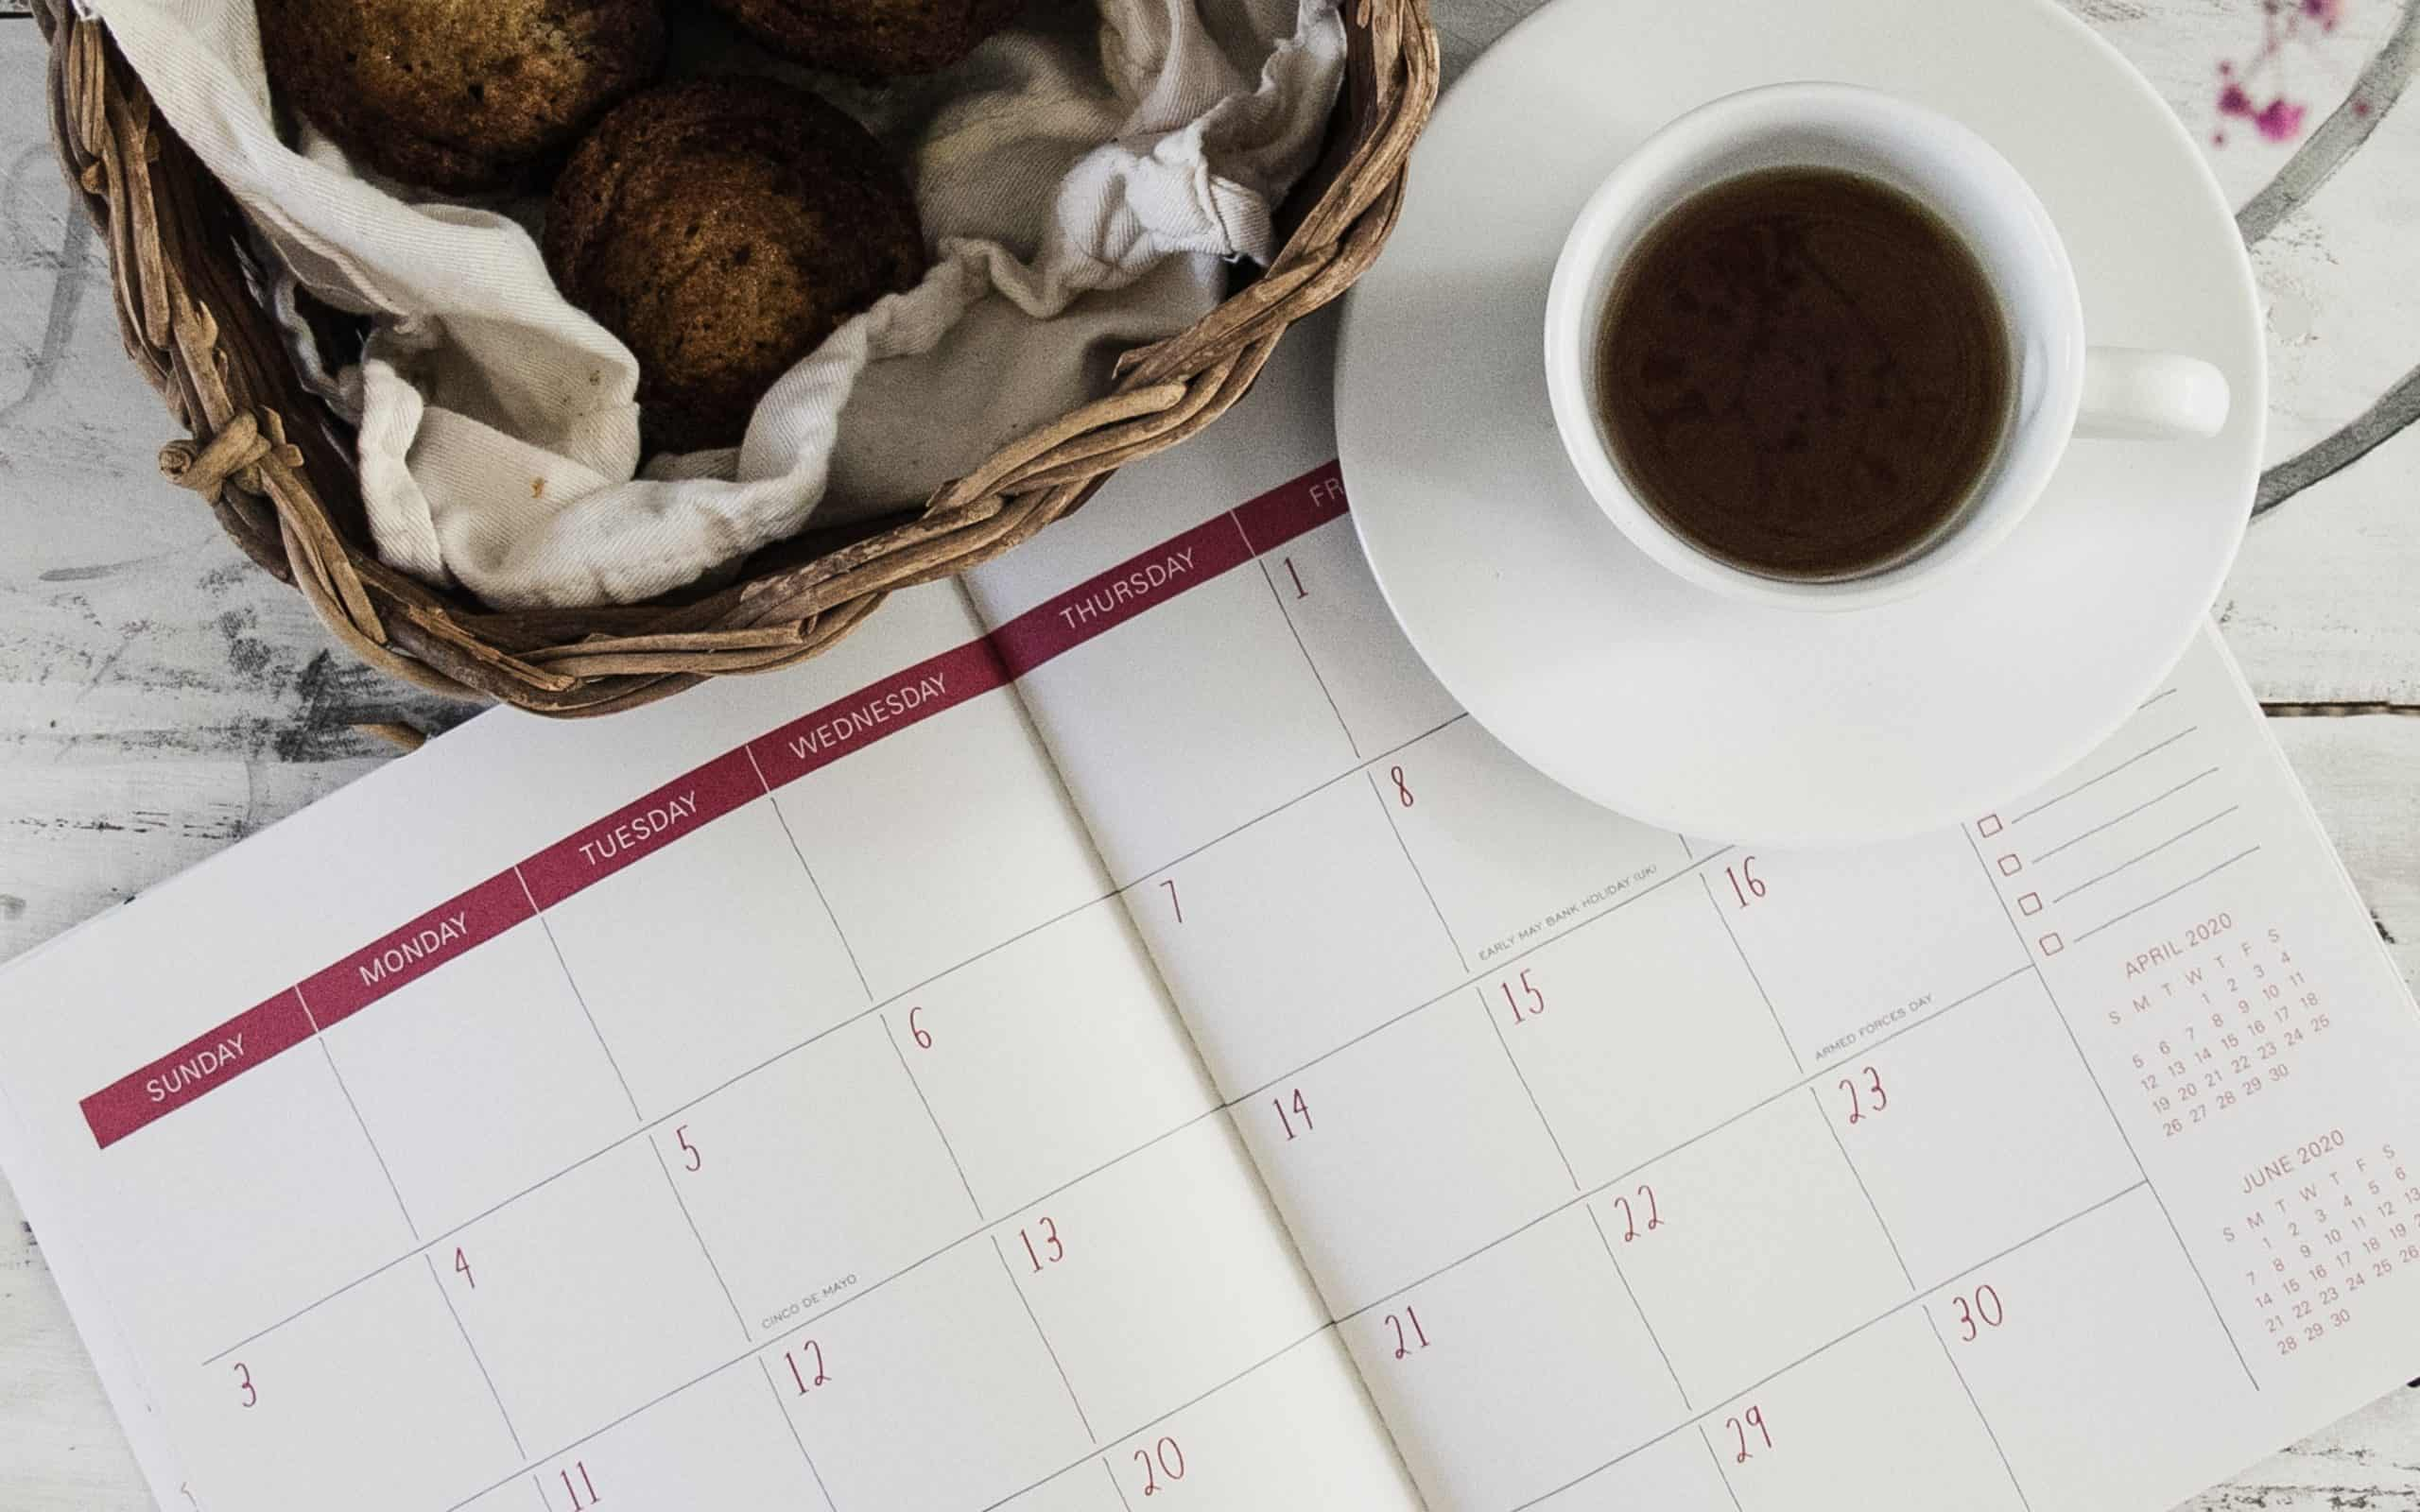 No spend month challenge - month calendar with cup of coffee